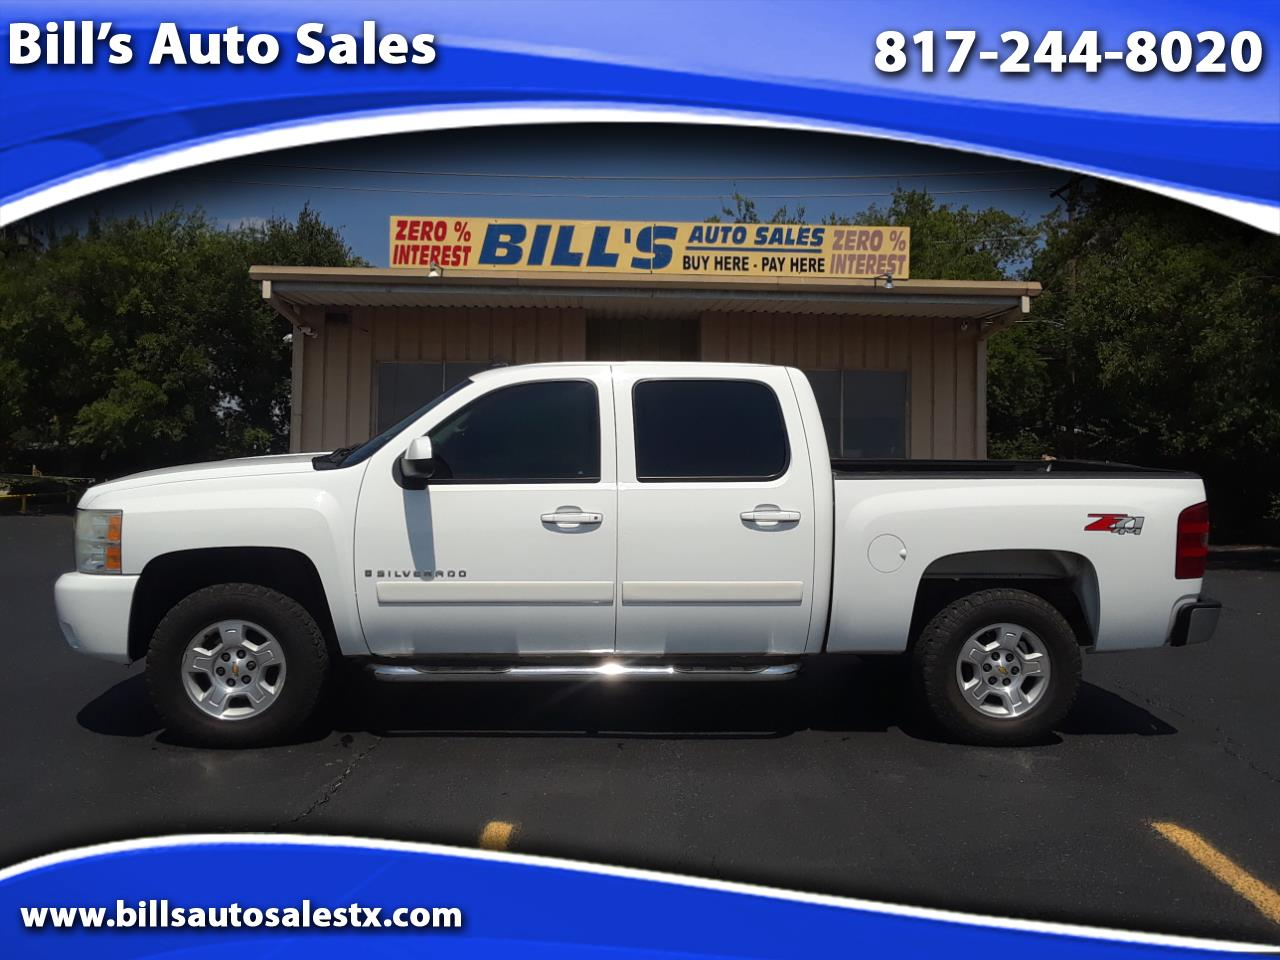 Bill S Auto Sales >> Buy Here Pay Here Cars For Sale Bill S Auto Sales